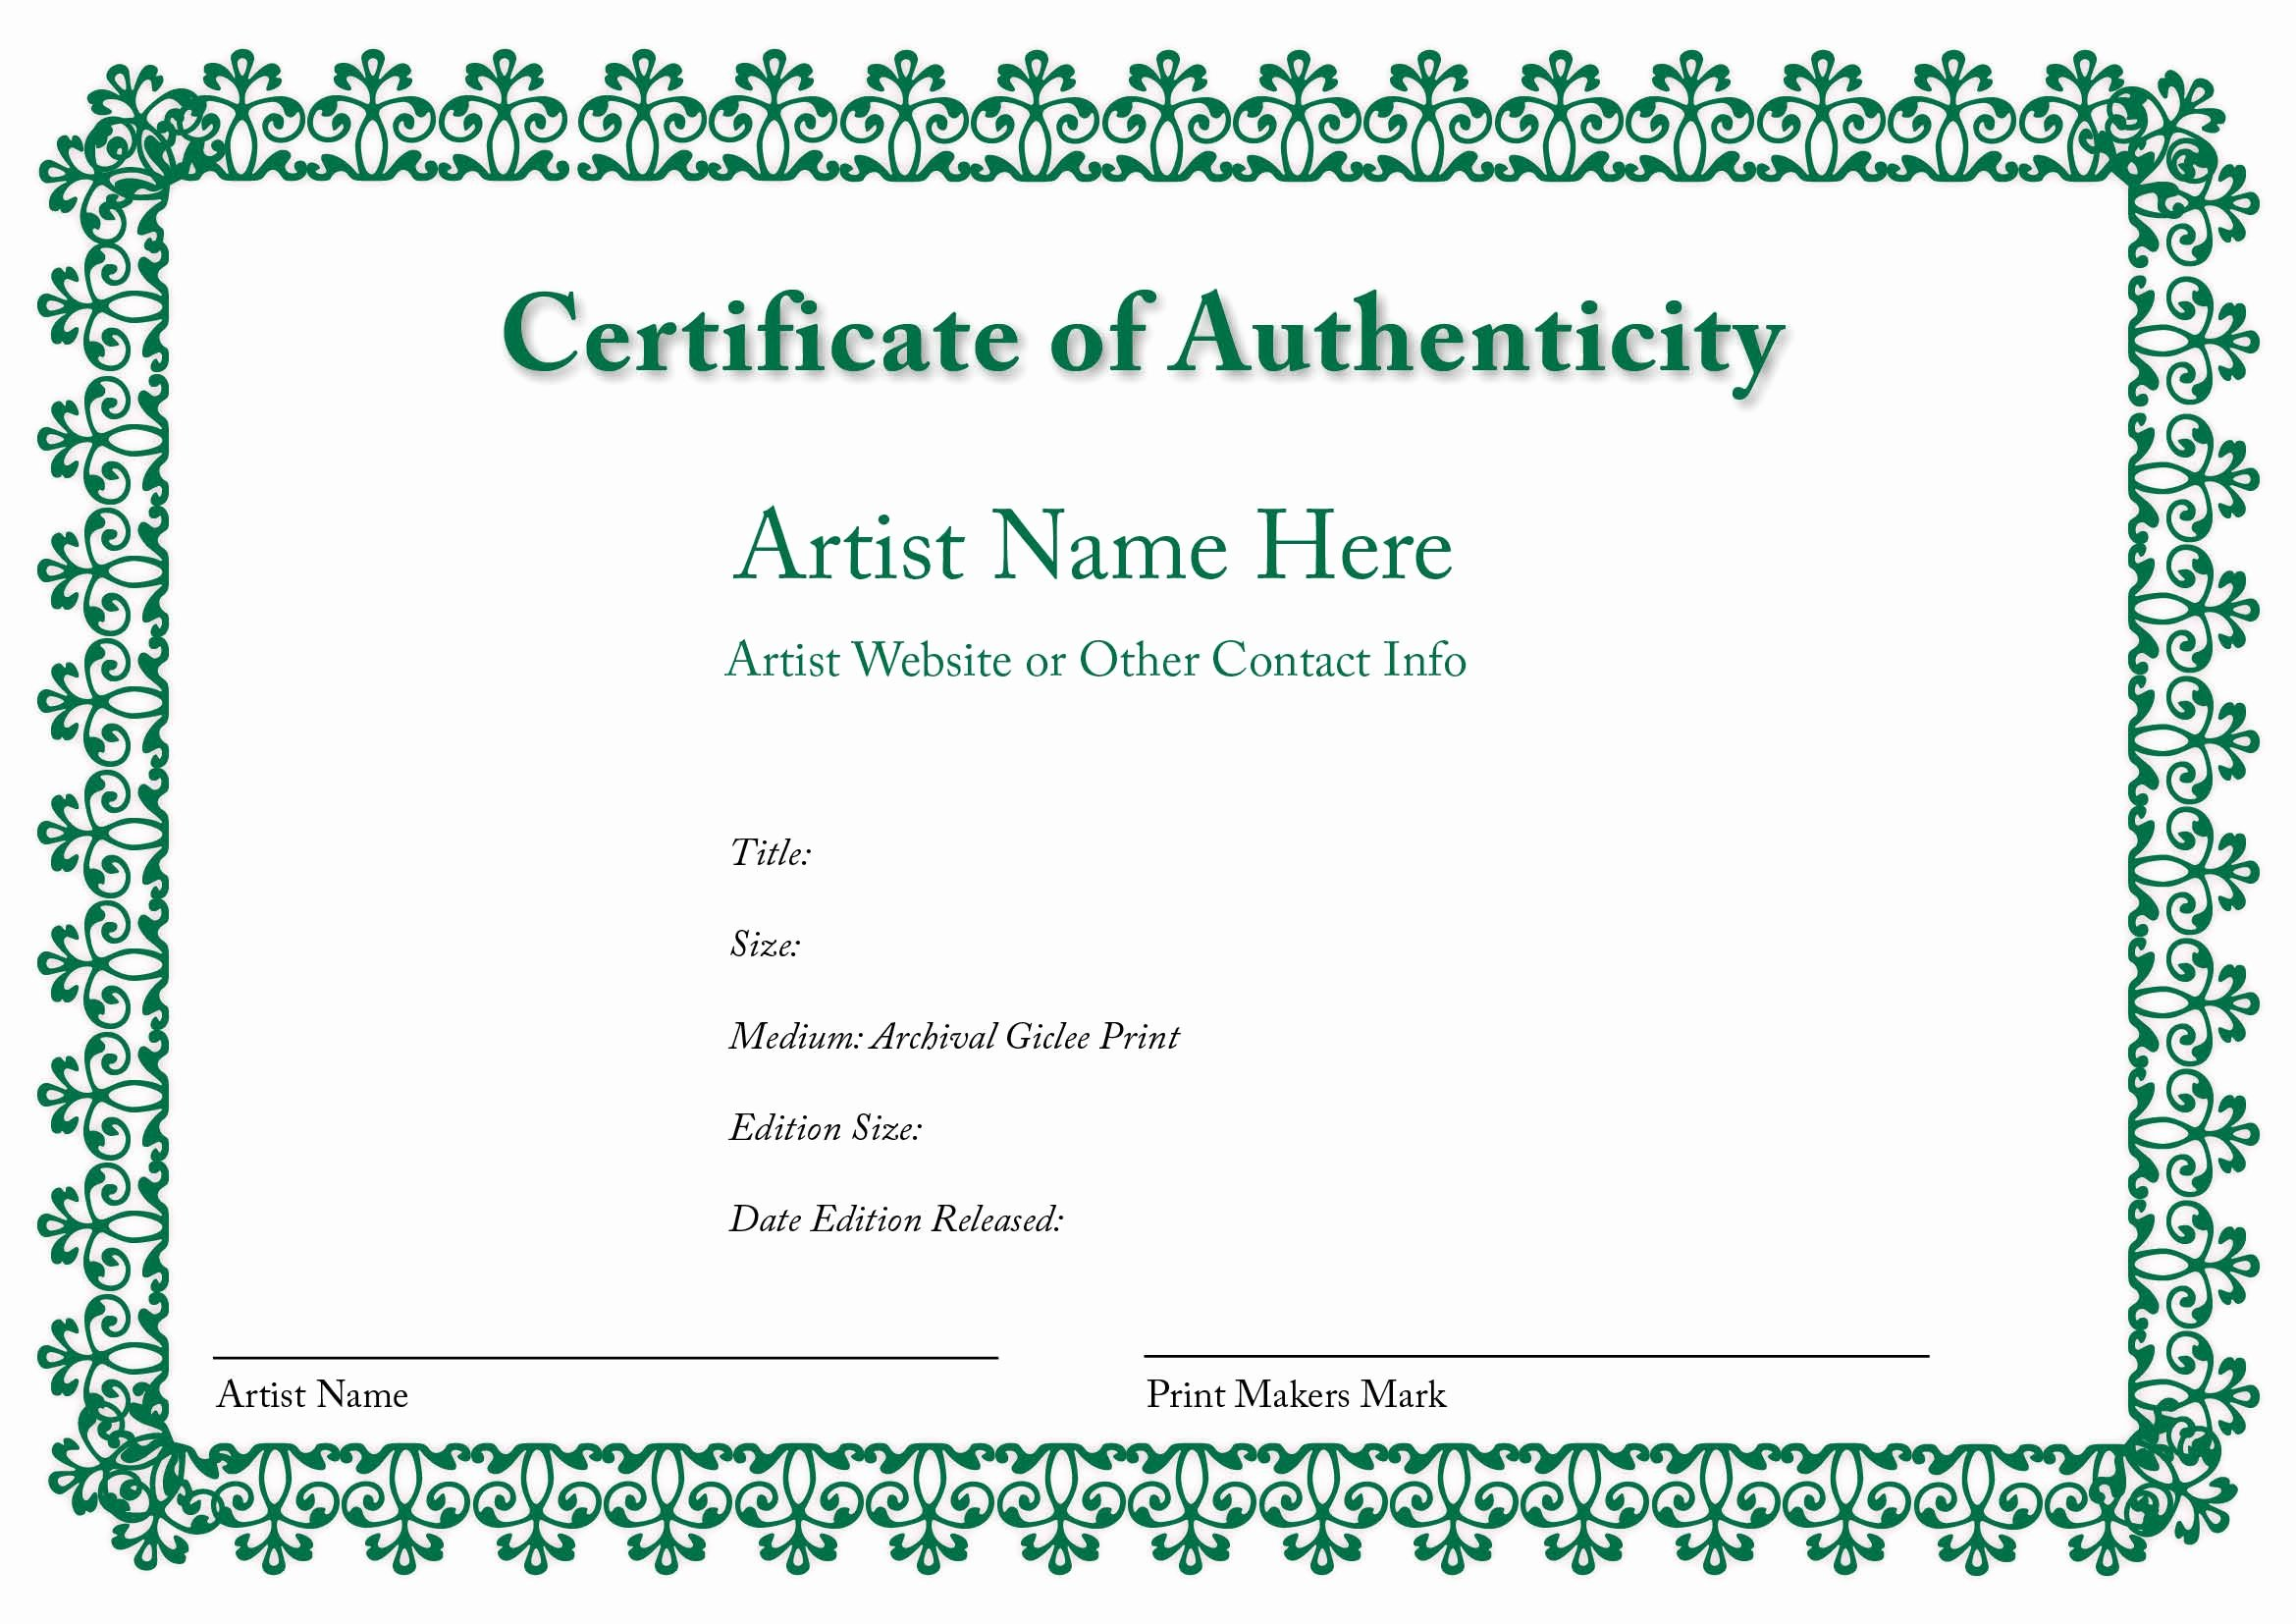 Jewelry Certificate Of Authenticity Template Luxury Certificate Of Authenticity Of An Art Print In 2019